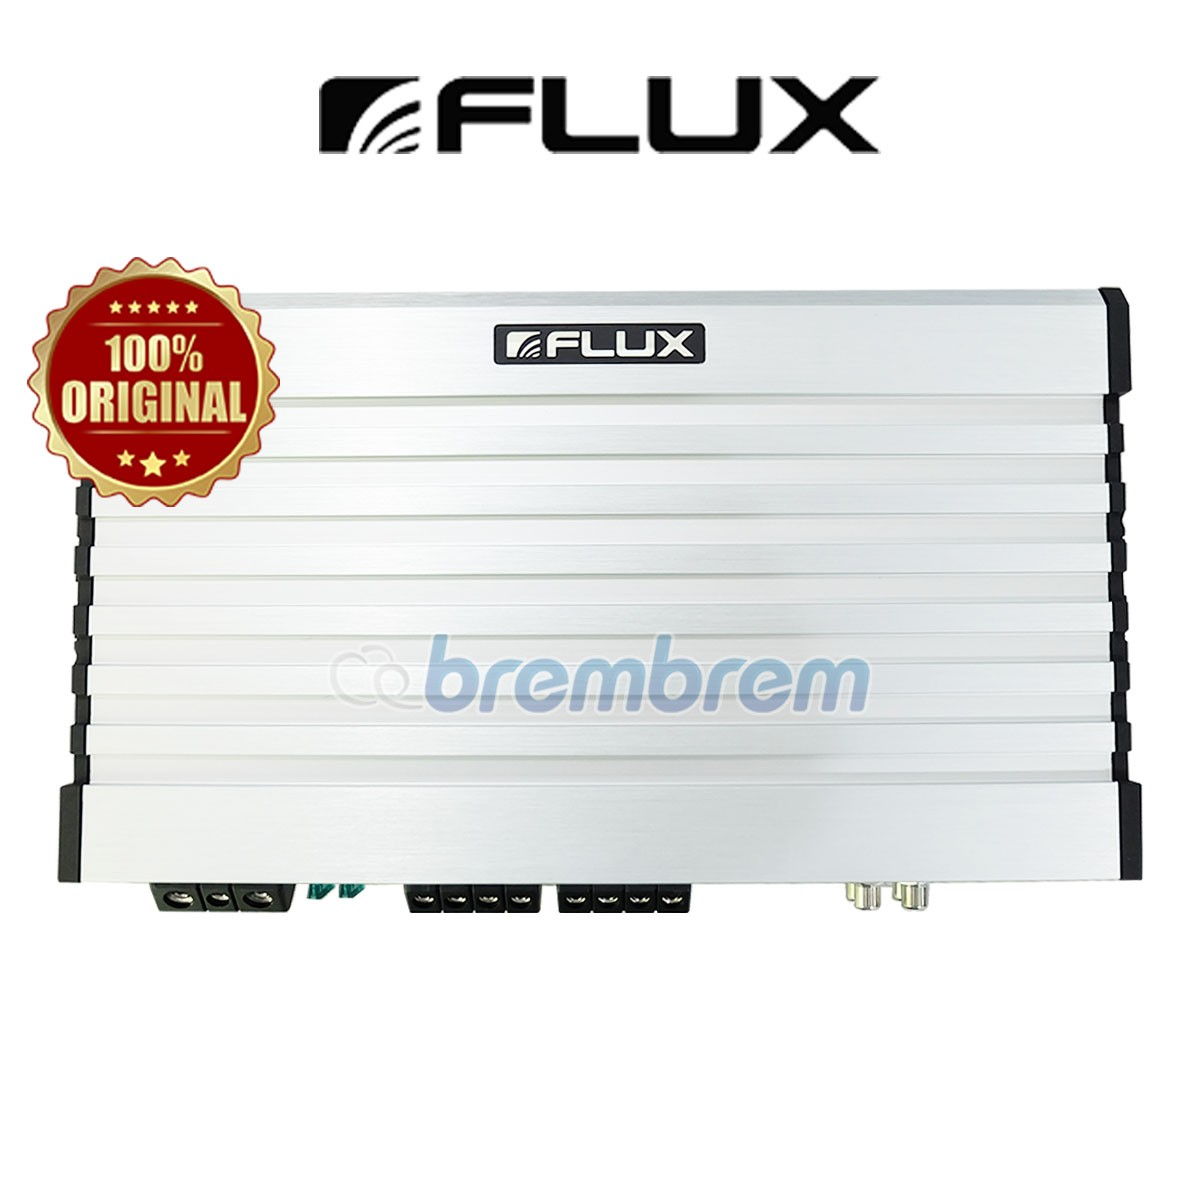 FLUX SPORTY 904 - POWER 4 CHANNEL